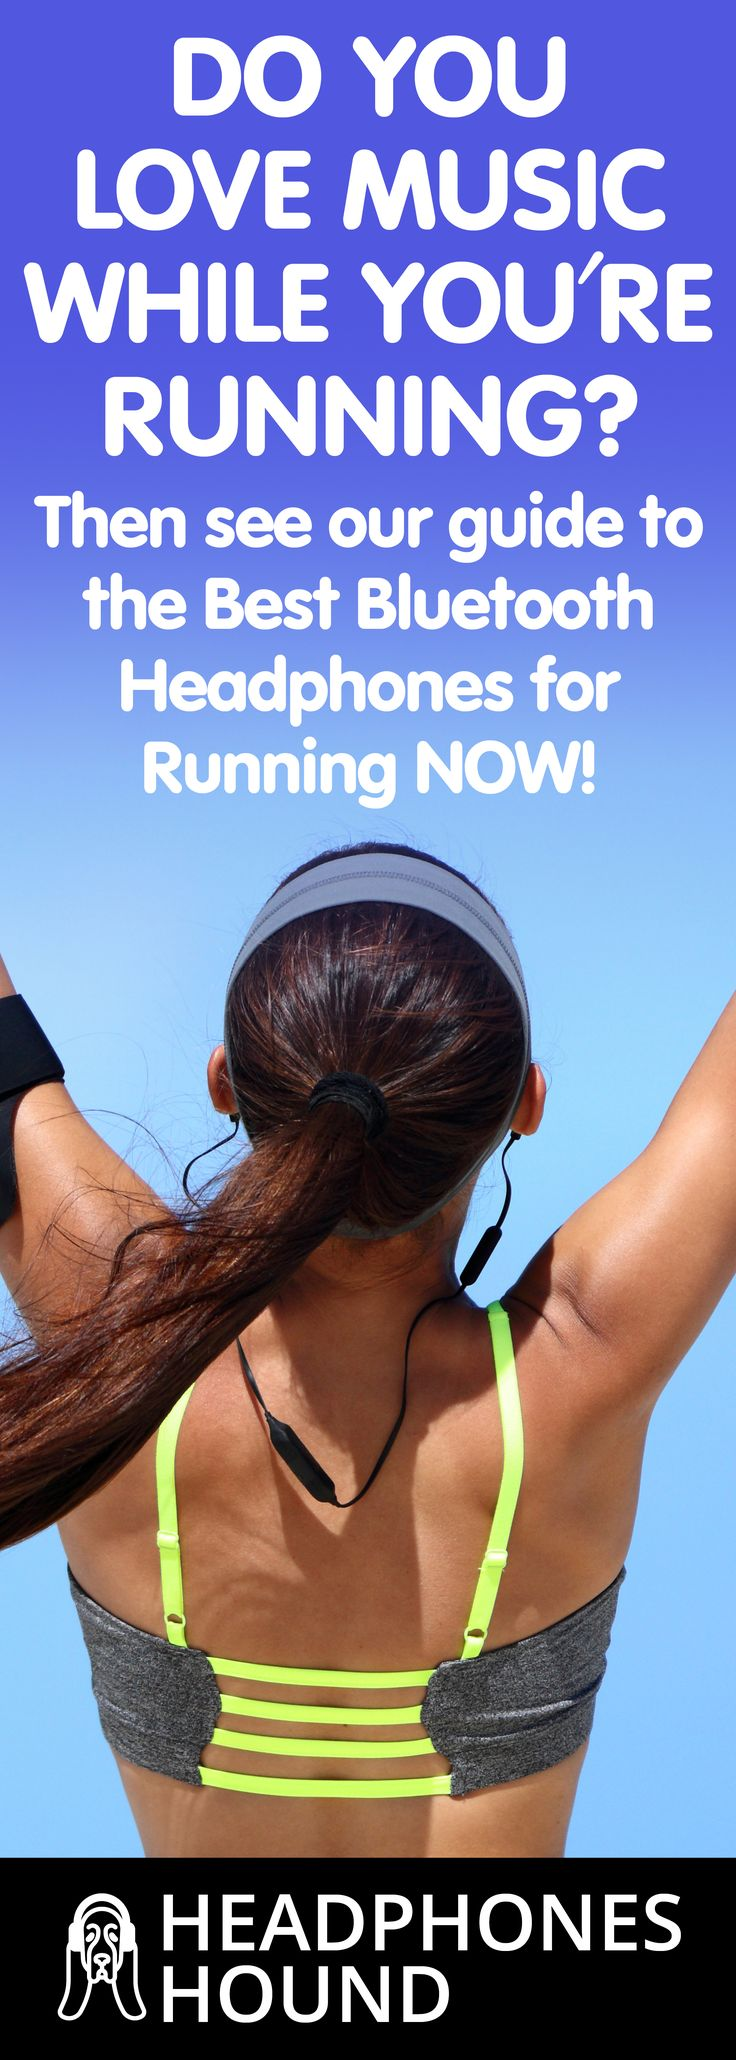 Not sure which are the best Bluetooth headphones to choose for running in 2016? Let us help you! Check out our Top 8 Best Headphones for Running now only at Headphones Hound.